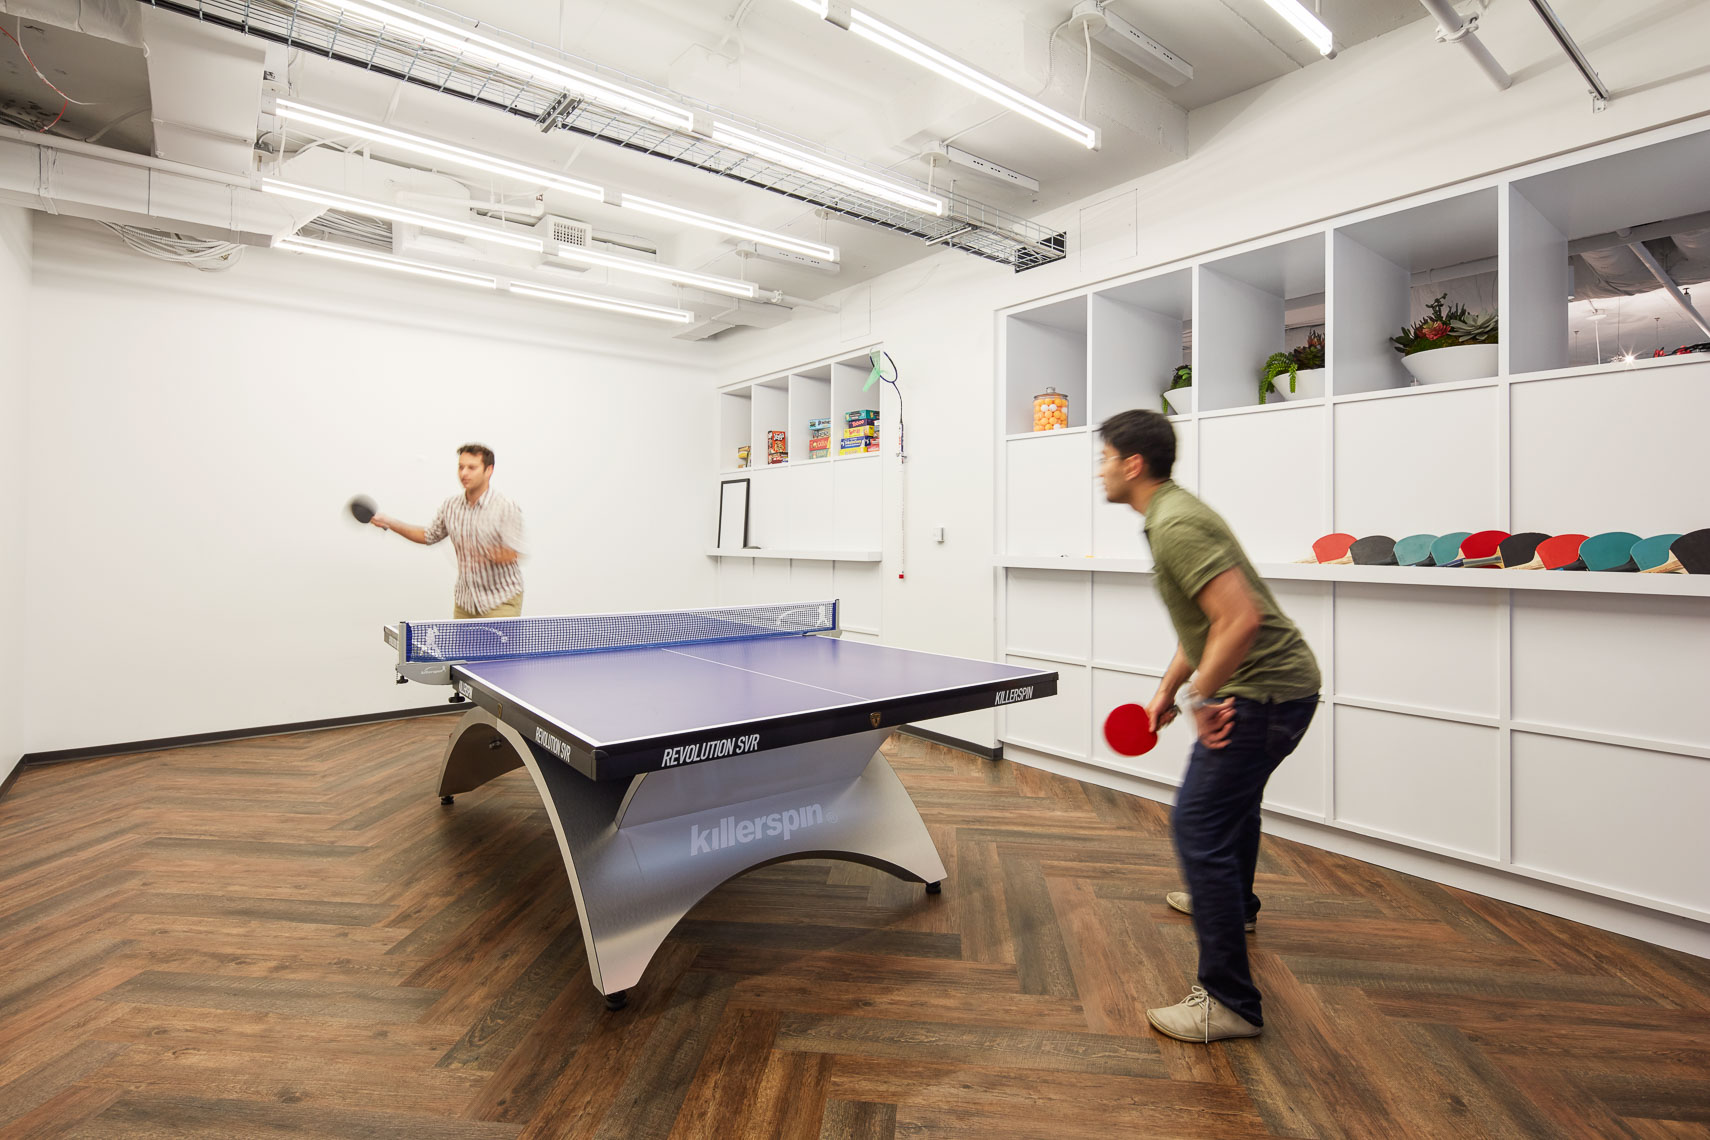 Ping pong table inside modern office interiors